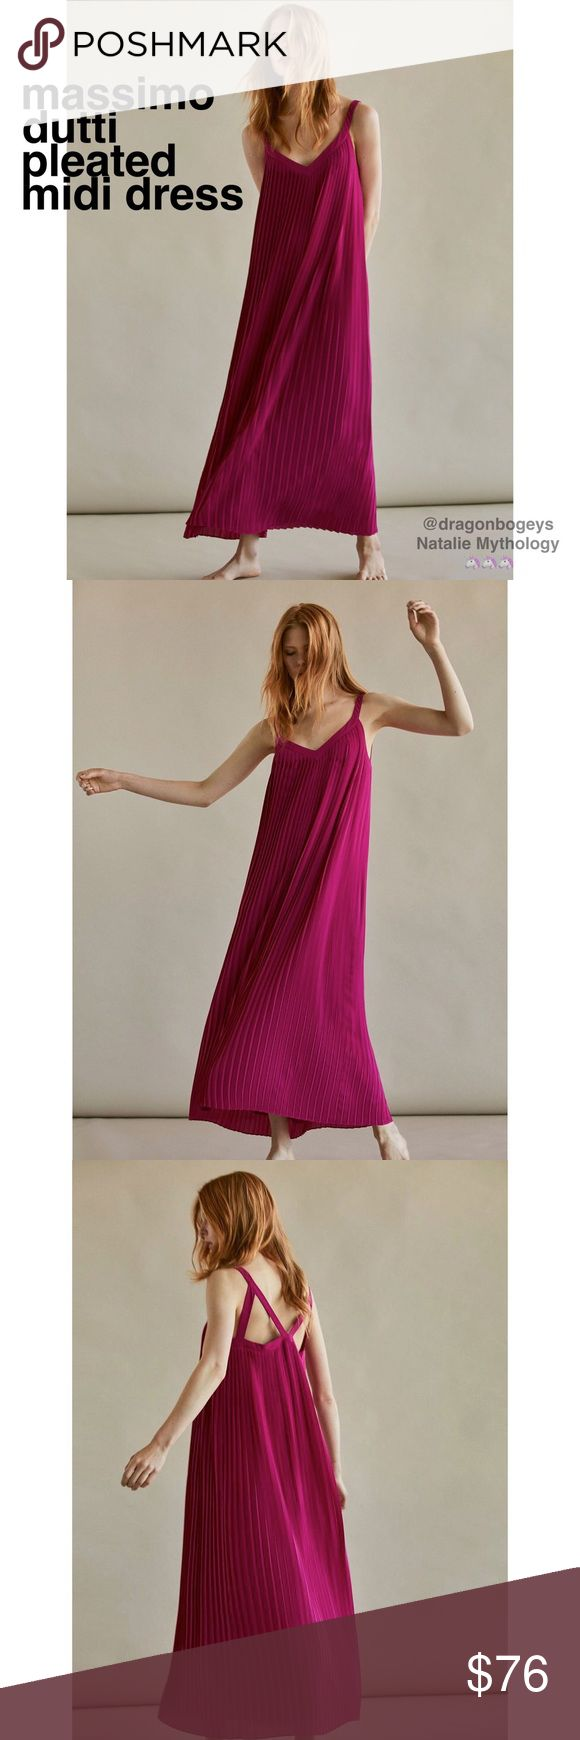 """Massimo Dutti Pleated Midi Dress Beautiful brand new with tags dress from Massimo Dutti Spain. This vibrant fuchsia colored frock features a flowy fit with accordion pleating and cutout shoulders. Fully lined. Outer fabric is 100% polyester. Lining is 100% viscose. Length is 53"""", bust is 15"""" laid flat. Material does not provide stretch. New with tags, tried on but never worn. Massimo Dutti Dresses Midi"""